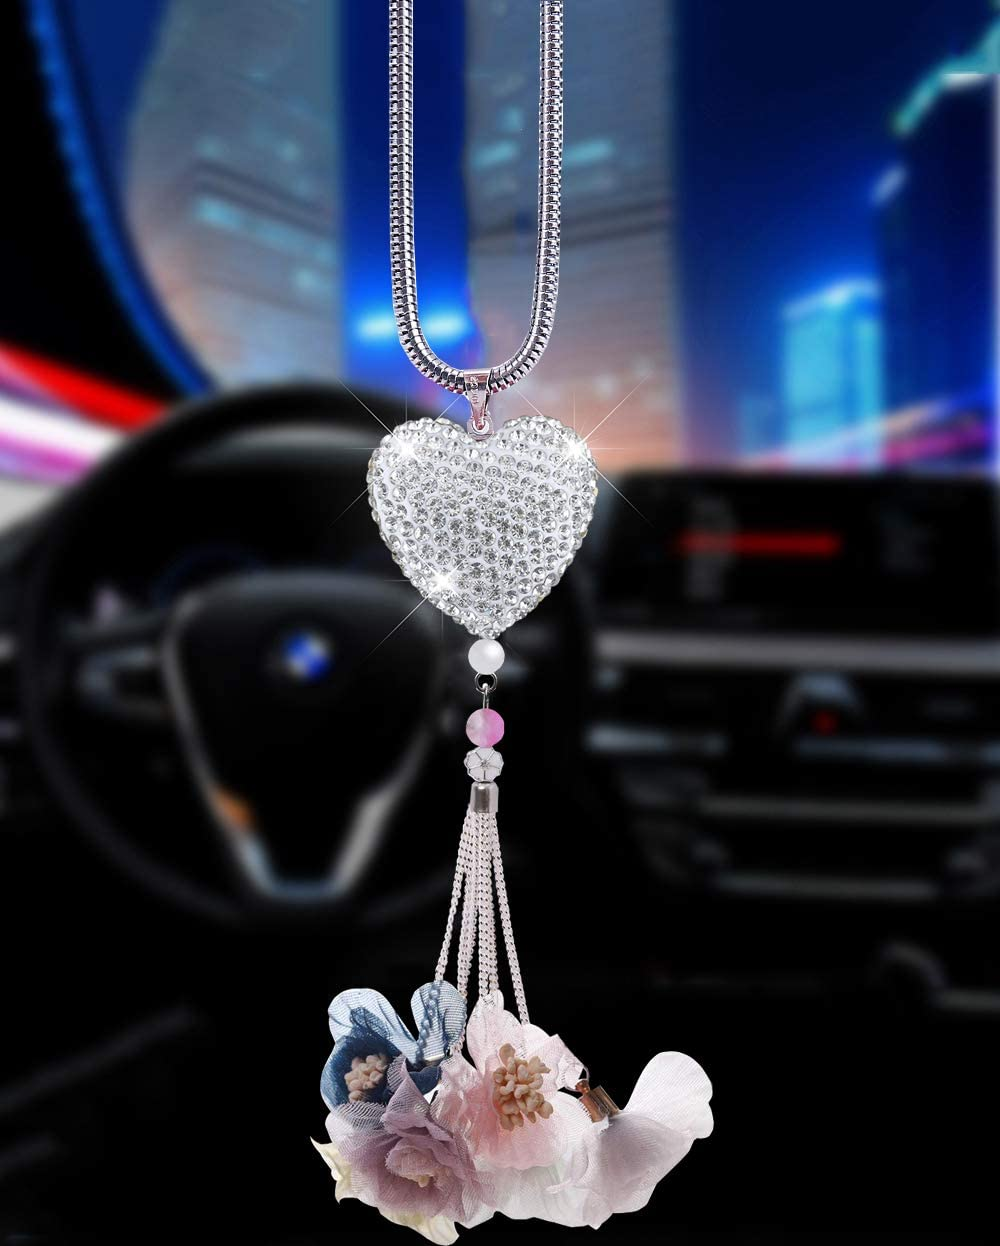 Alotex Heart Bling Car Accessories for Women,Bling Car Decoration Crystal Car Rear View Mirror Charms Decor,Lucky Hanging Interior Ornament Pendant Sun Catch Silver-Light Blue